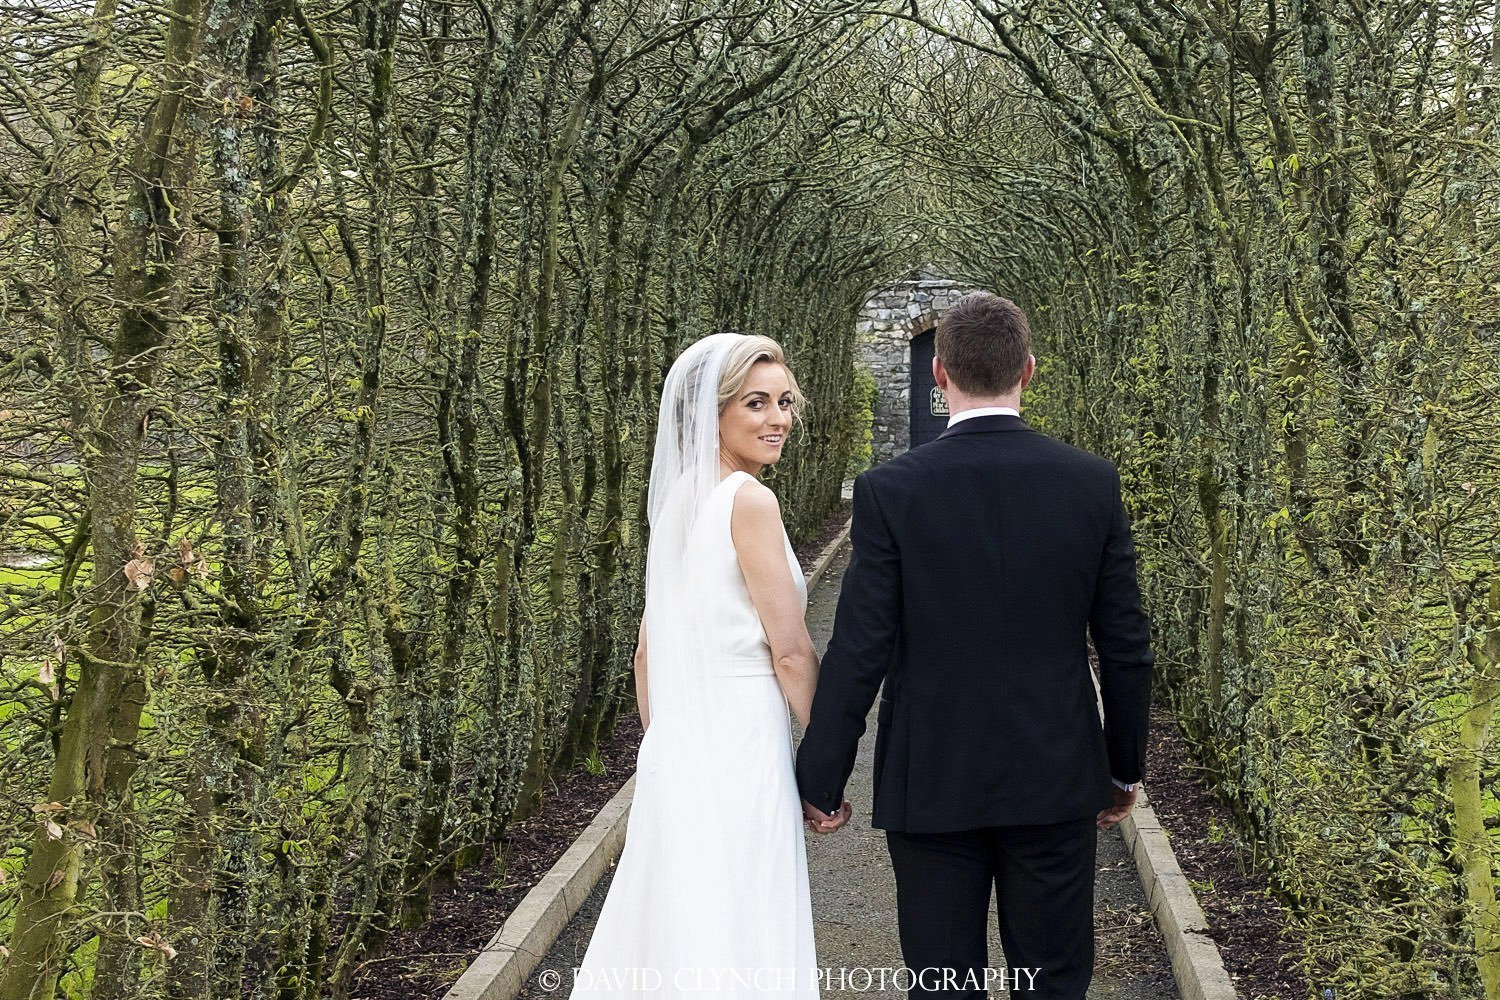 Wedding Photographers Dromoland Castle Clare Ireland